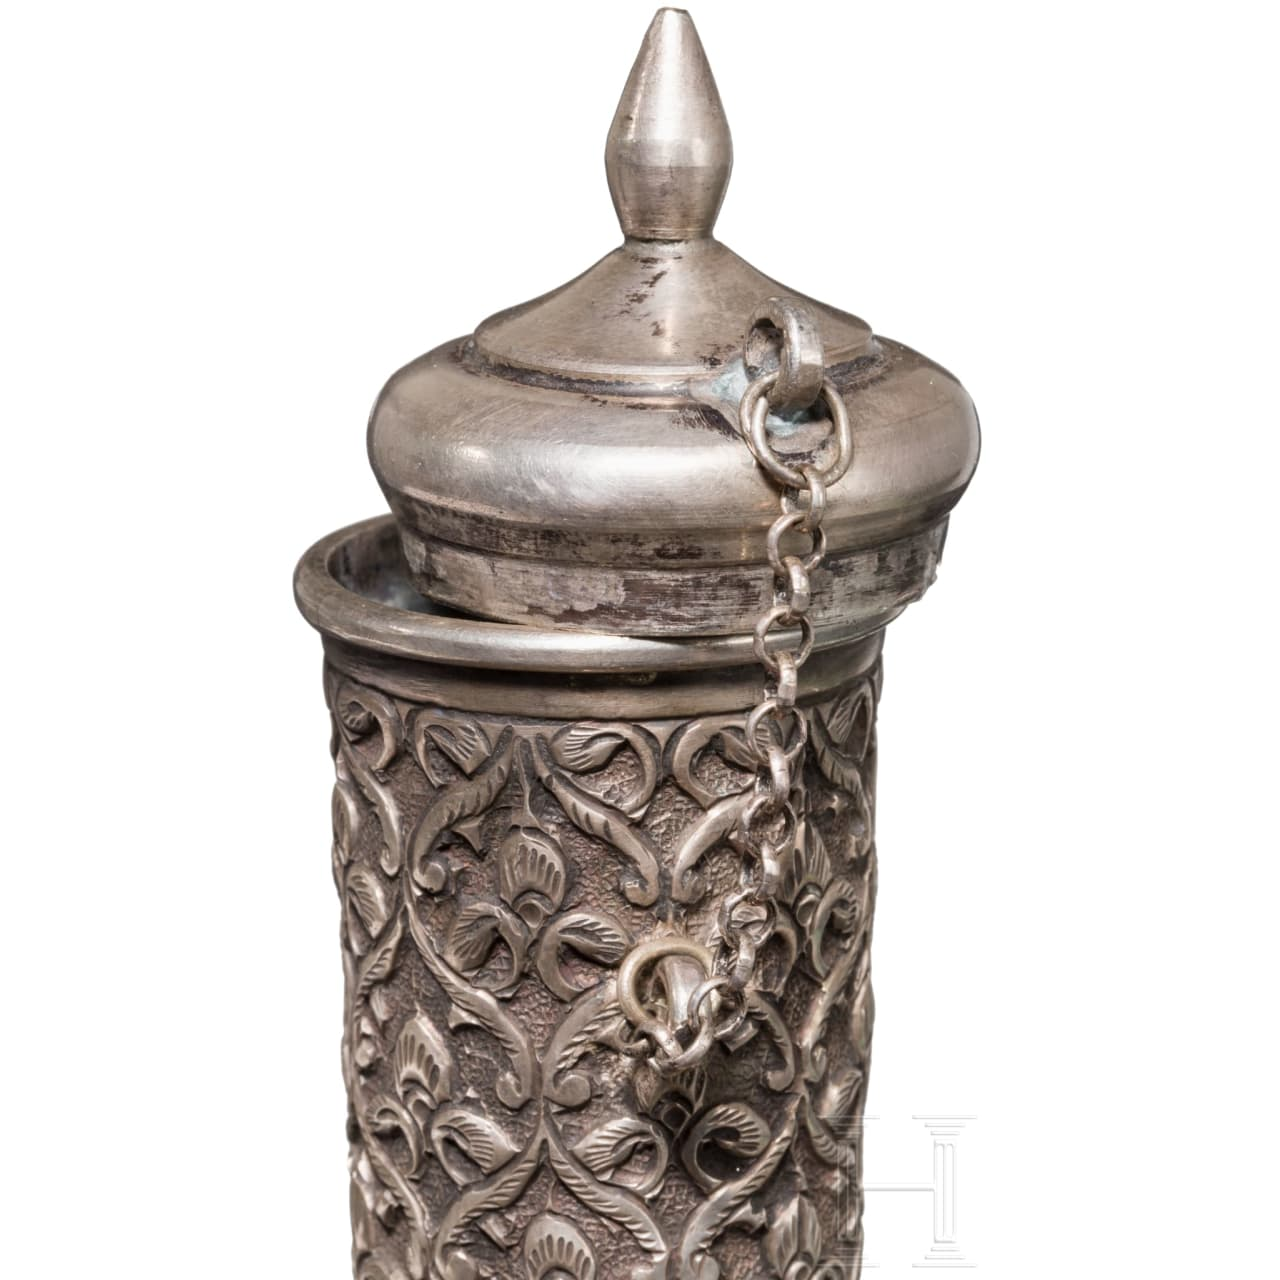 A velvet-covered, embroidered silver water flask, India, circa 1900